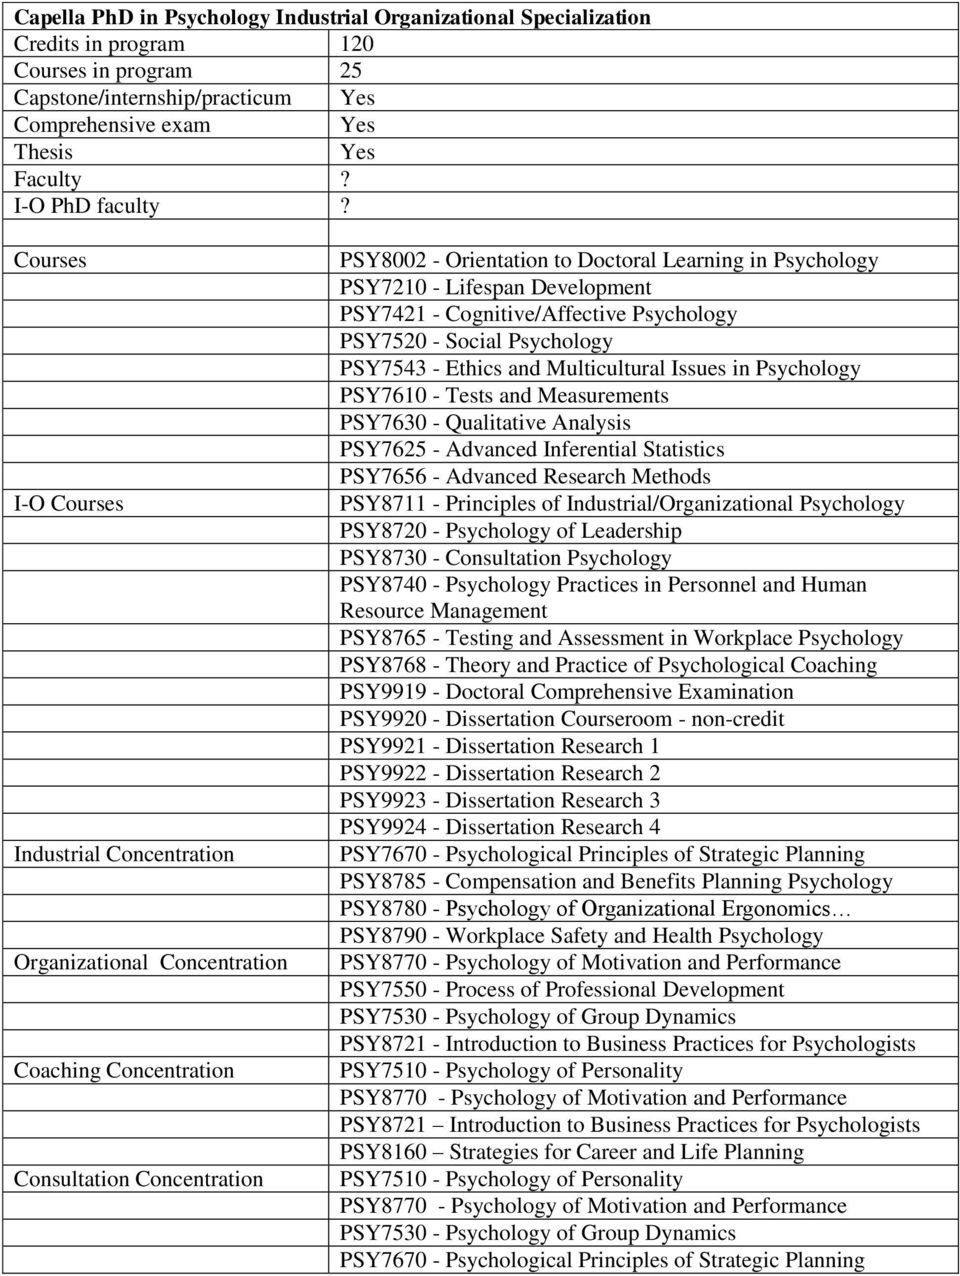 Development PSY7421 - Cognitive/Affective Psychology PSY7520 - Social Psychology PSY7543 - Ethics and Multicultural Issues in Psychology PSY7610 - Tests and Measurements PSY7630 - Qualitative